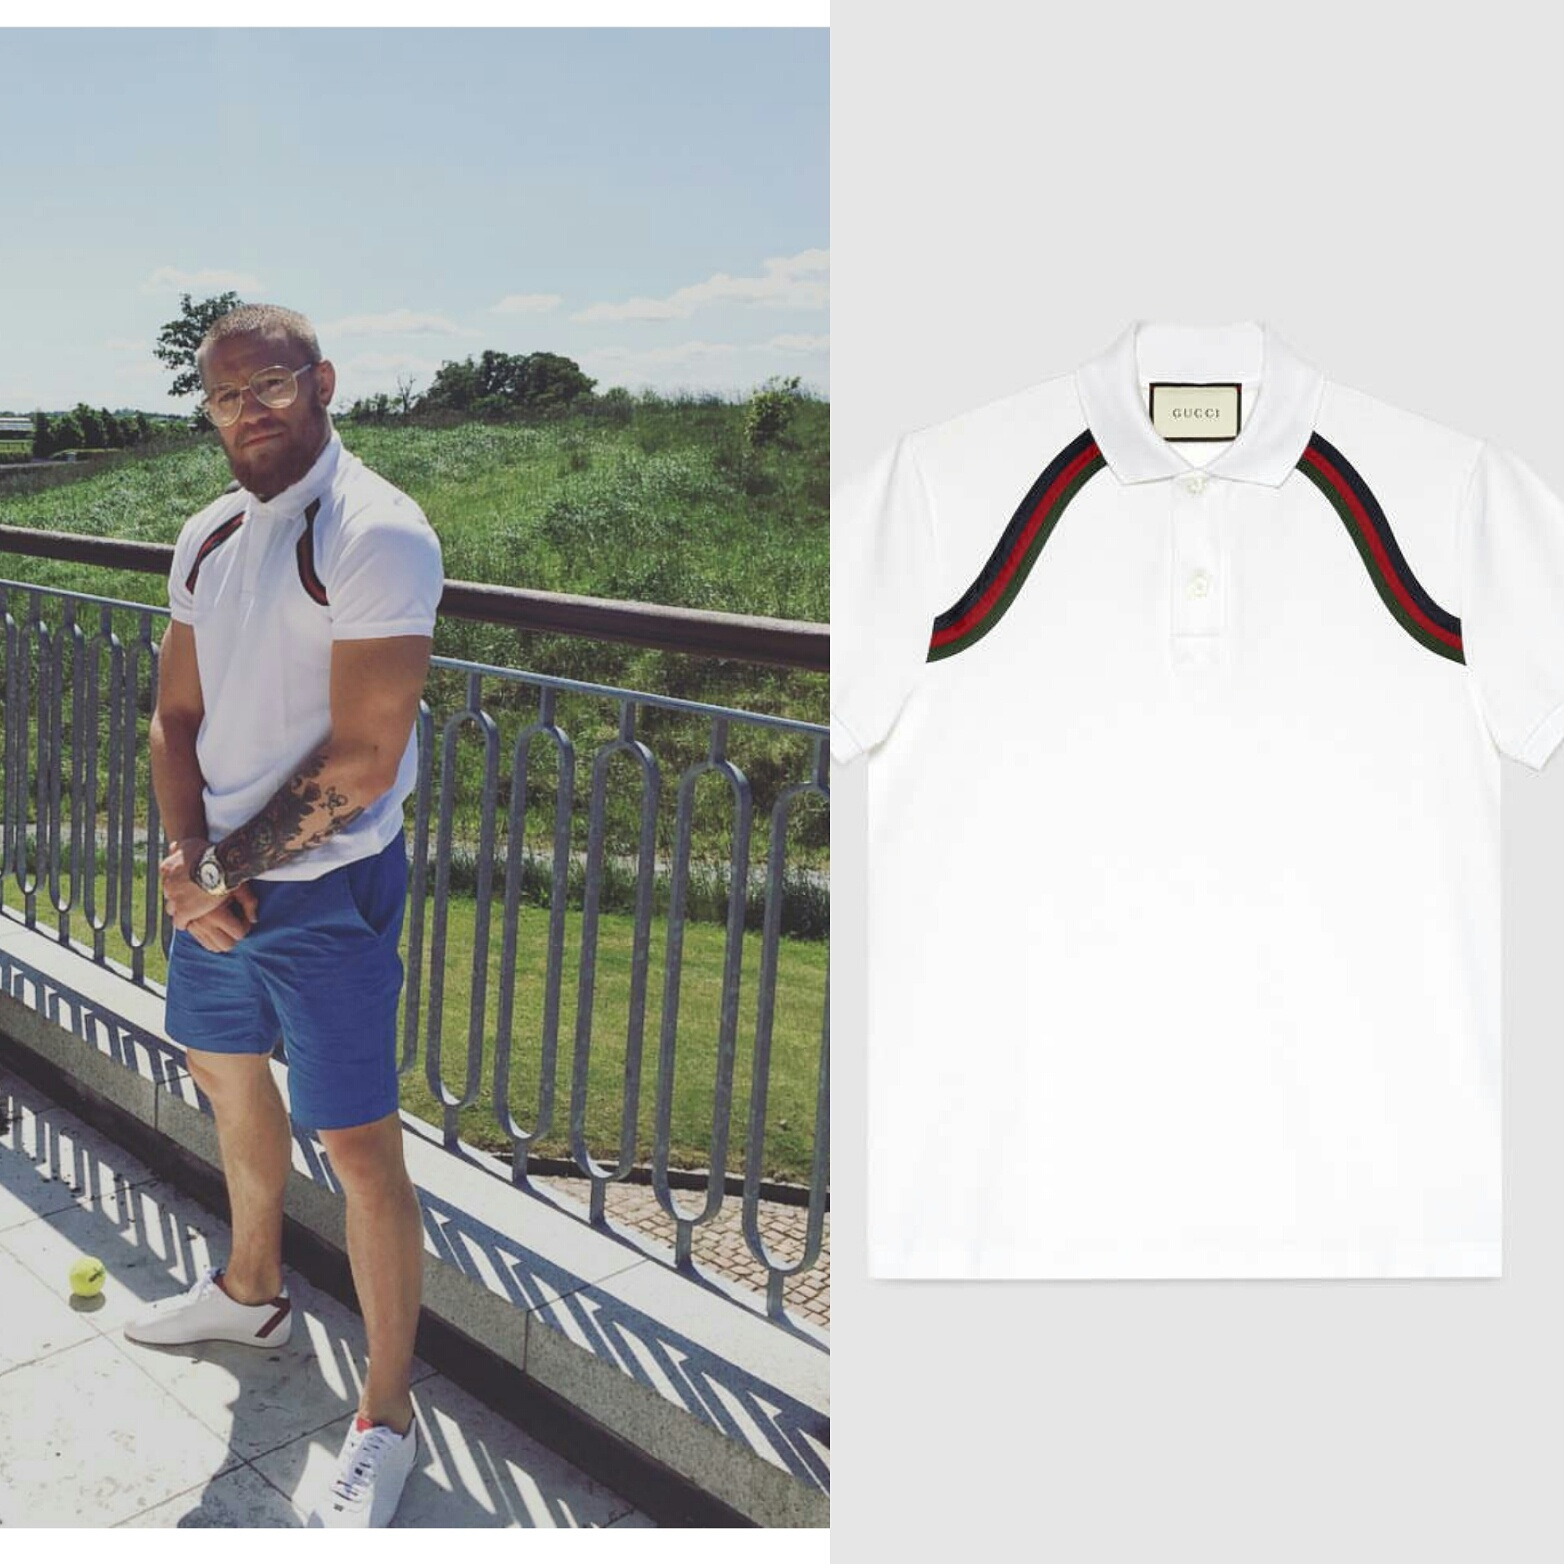 STYLE: UFC Conor McGregor's Instagram Gucci Cotton Polo And Gucci Sneakers